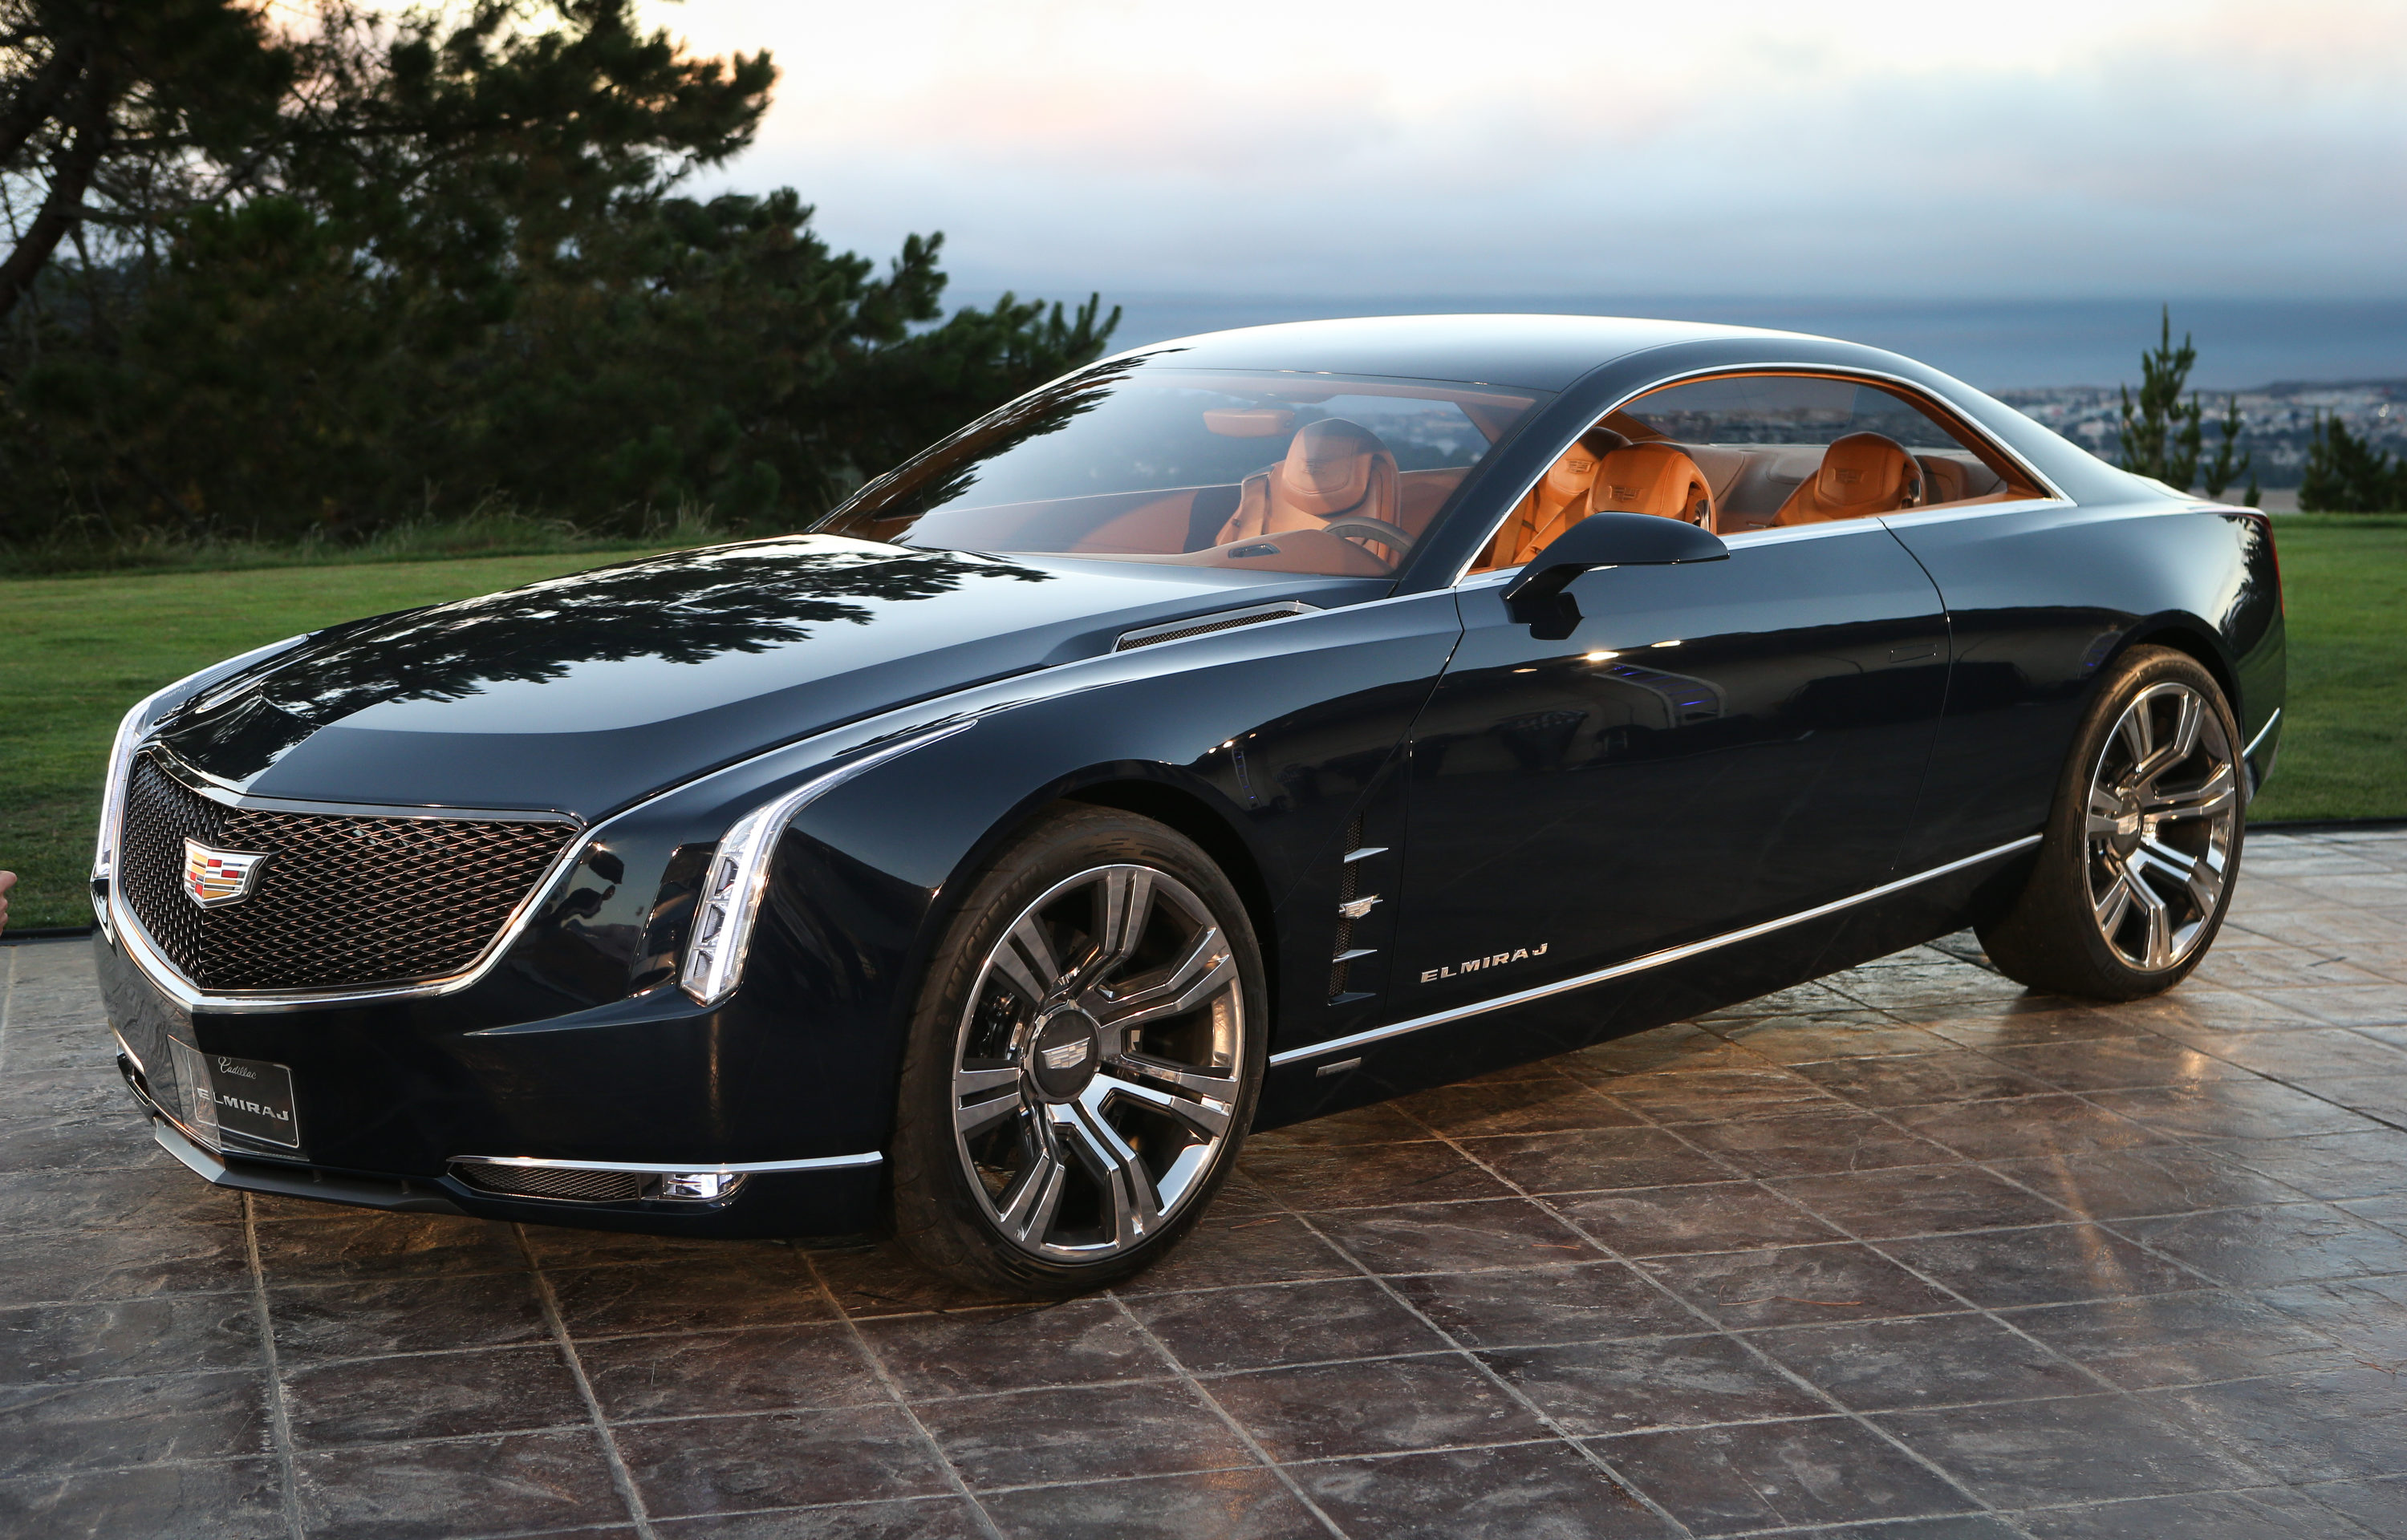 2019 Cadillac CTS Coupe Concept photo - 4